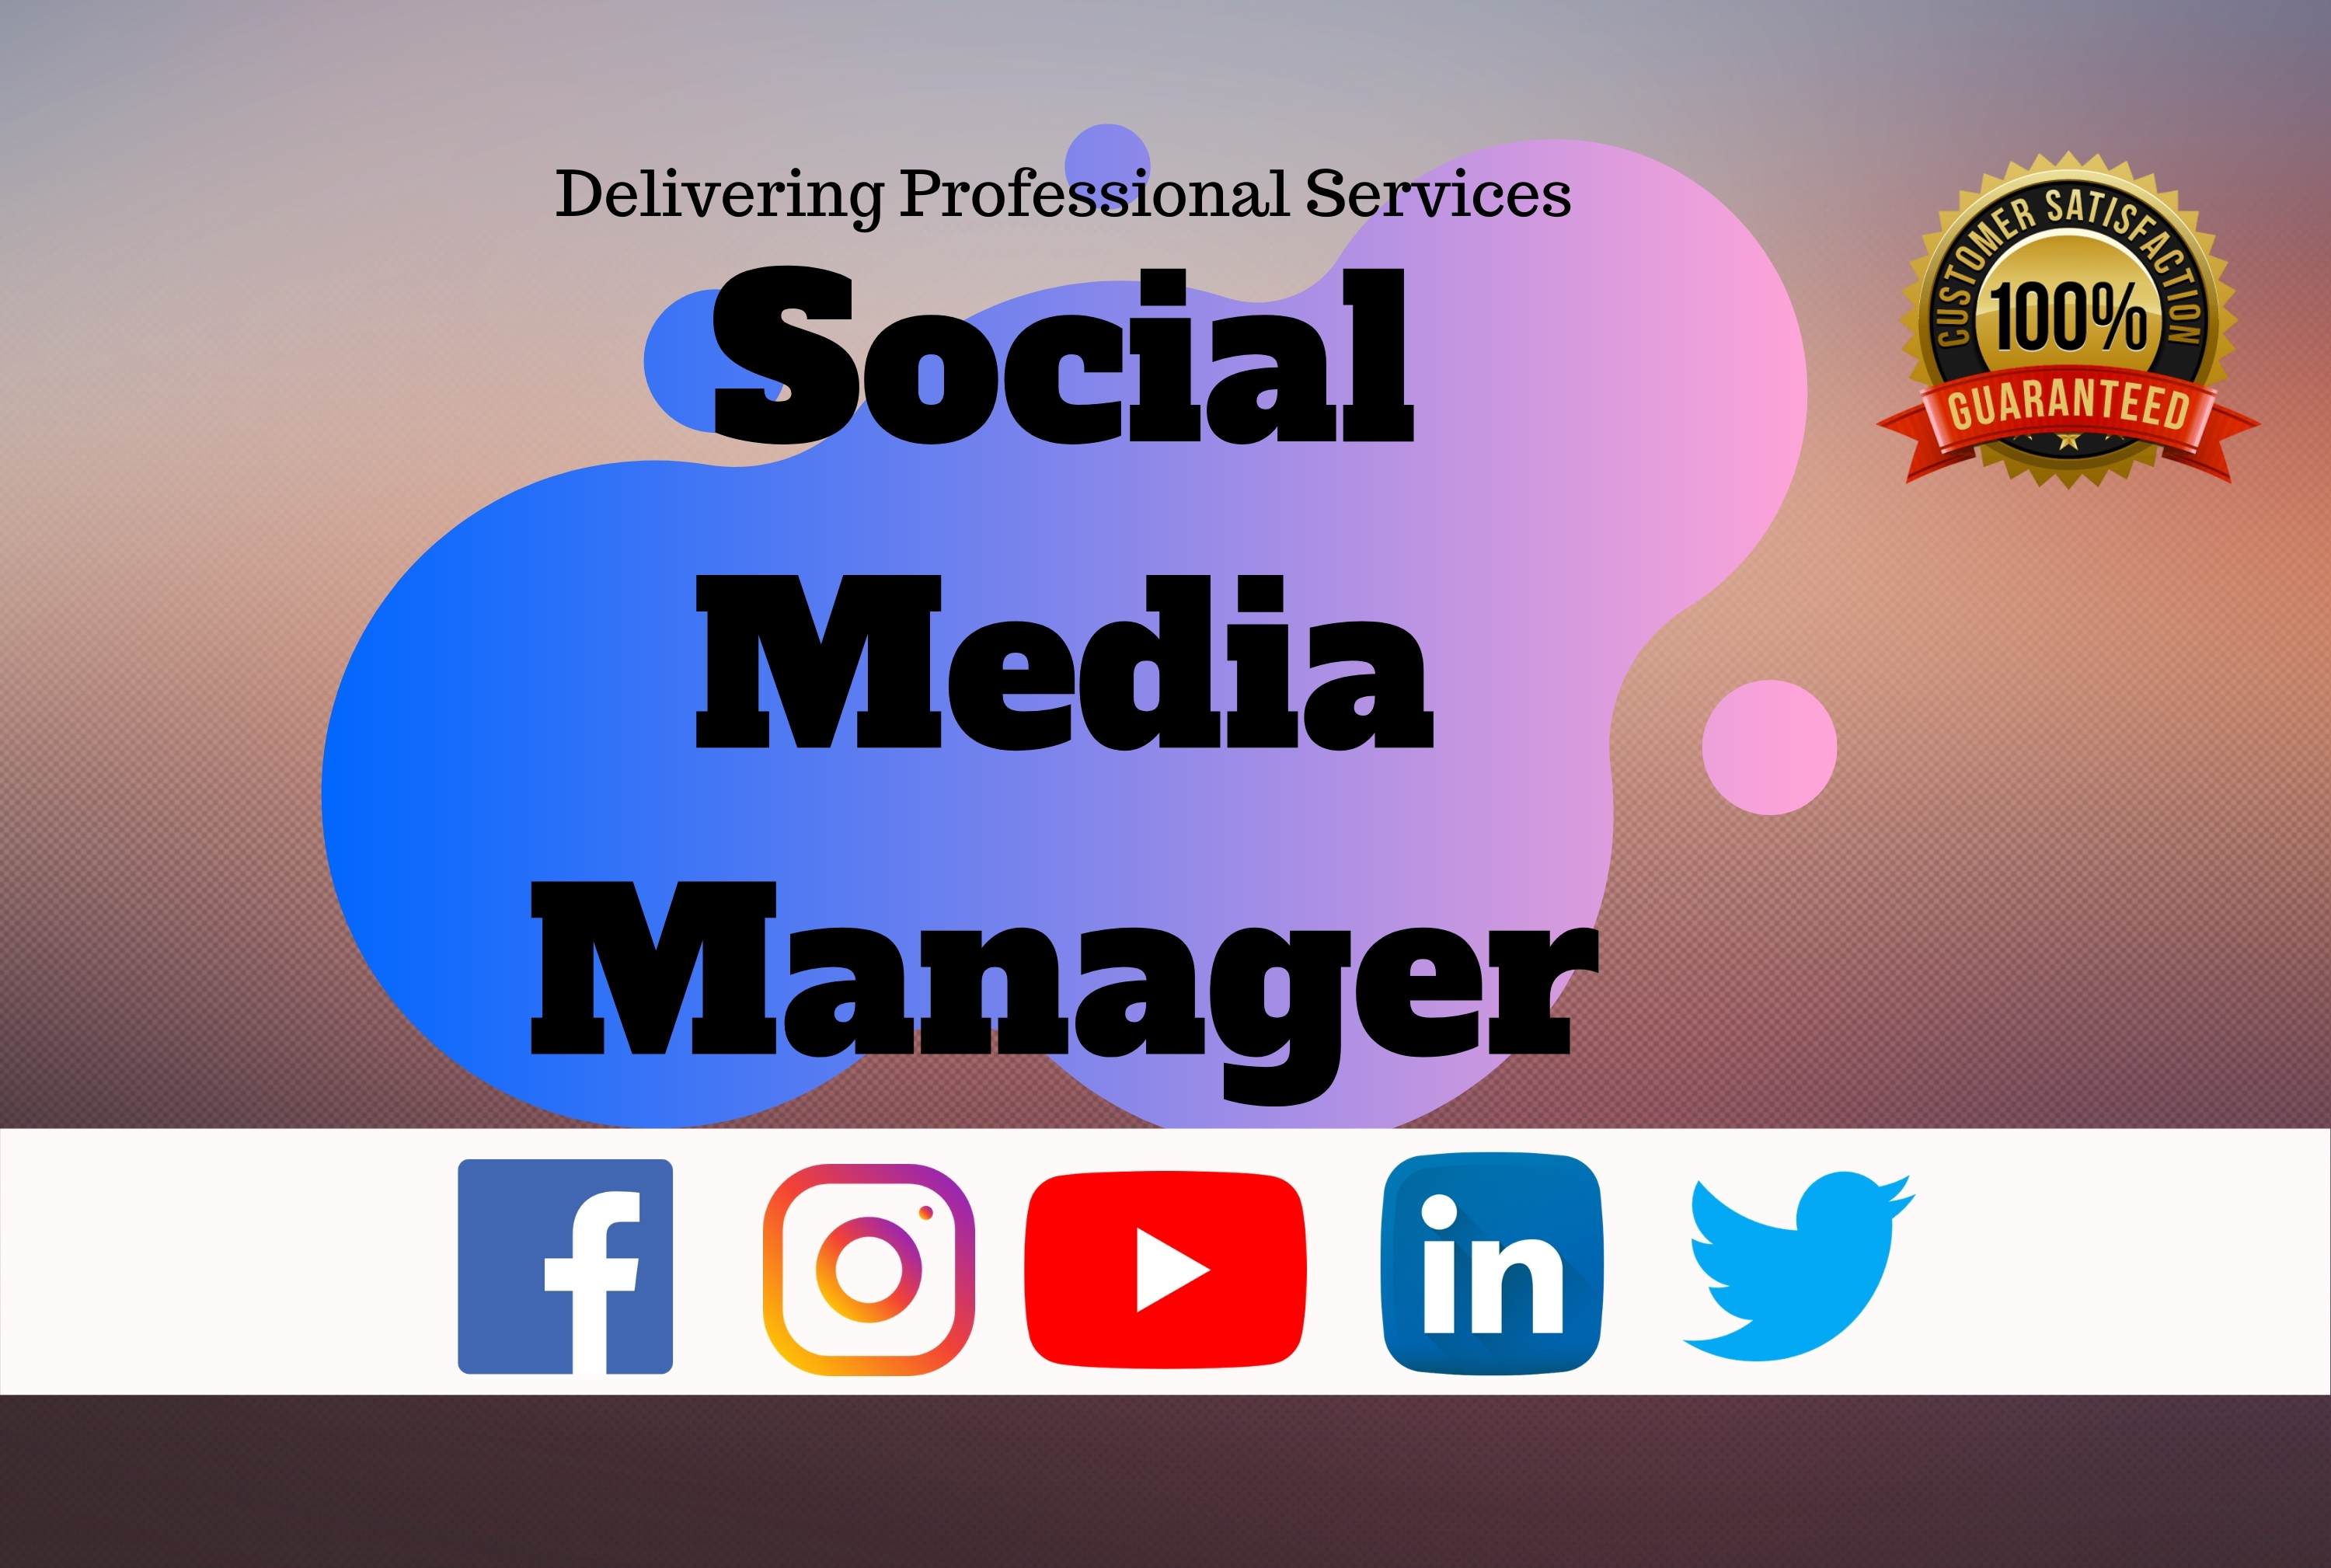 Your social media manager for 7 days